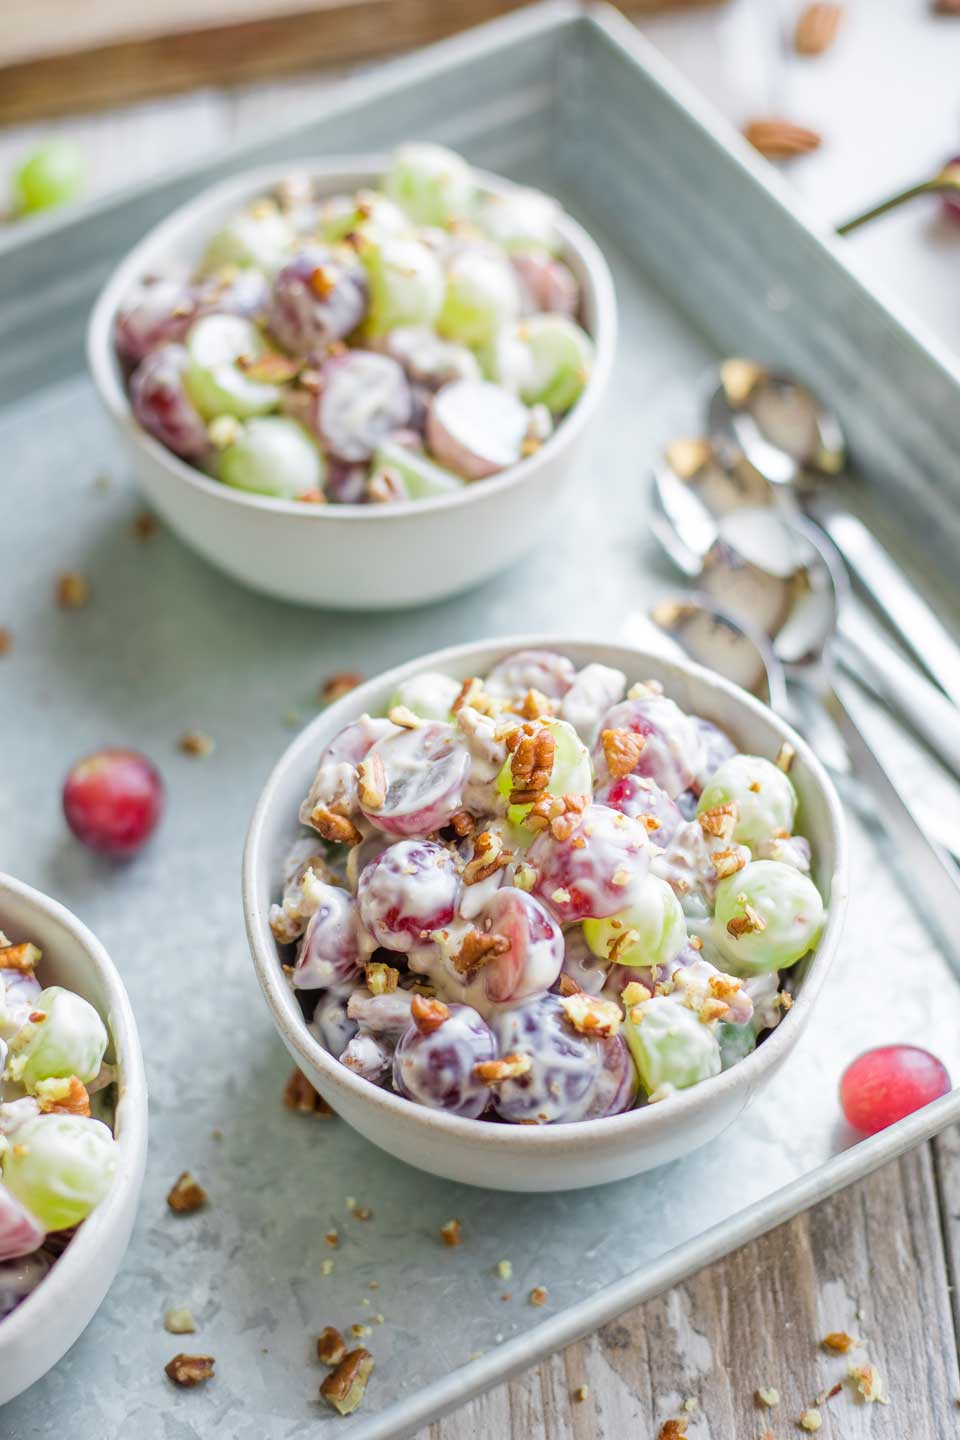 individual bowl of Grape Salad on metal serving tray with spoons and other bowls nearby, ready to be served